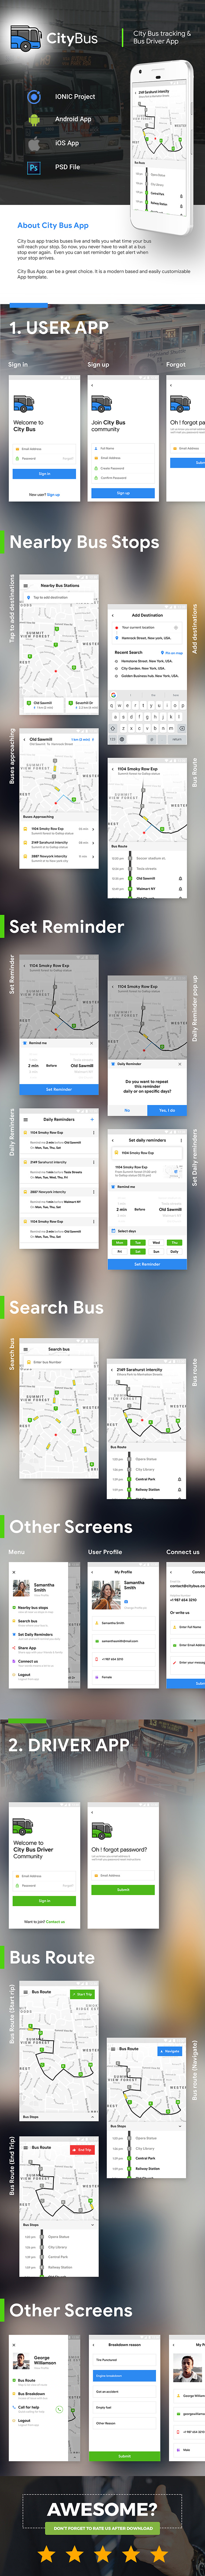 City Bus Tracking App with Driver App (Android App Template & iOS App Template) (HTML+CSS | IONIC 5) - 2